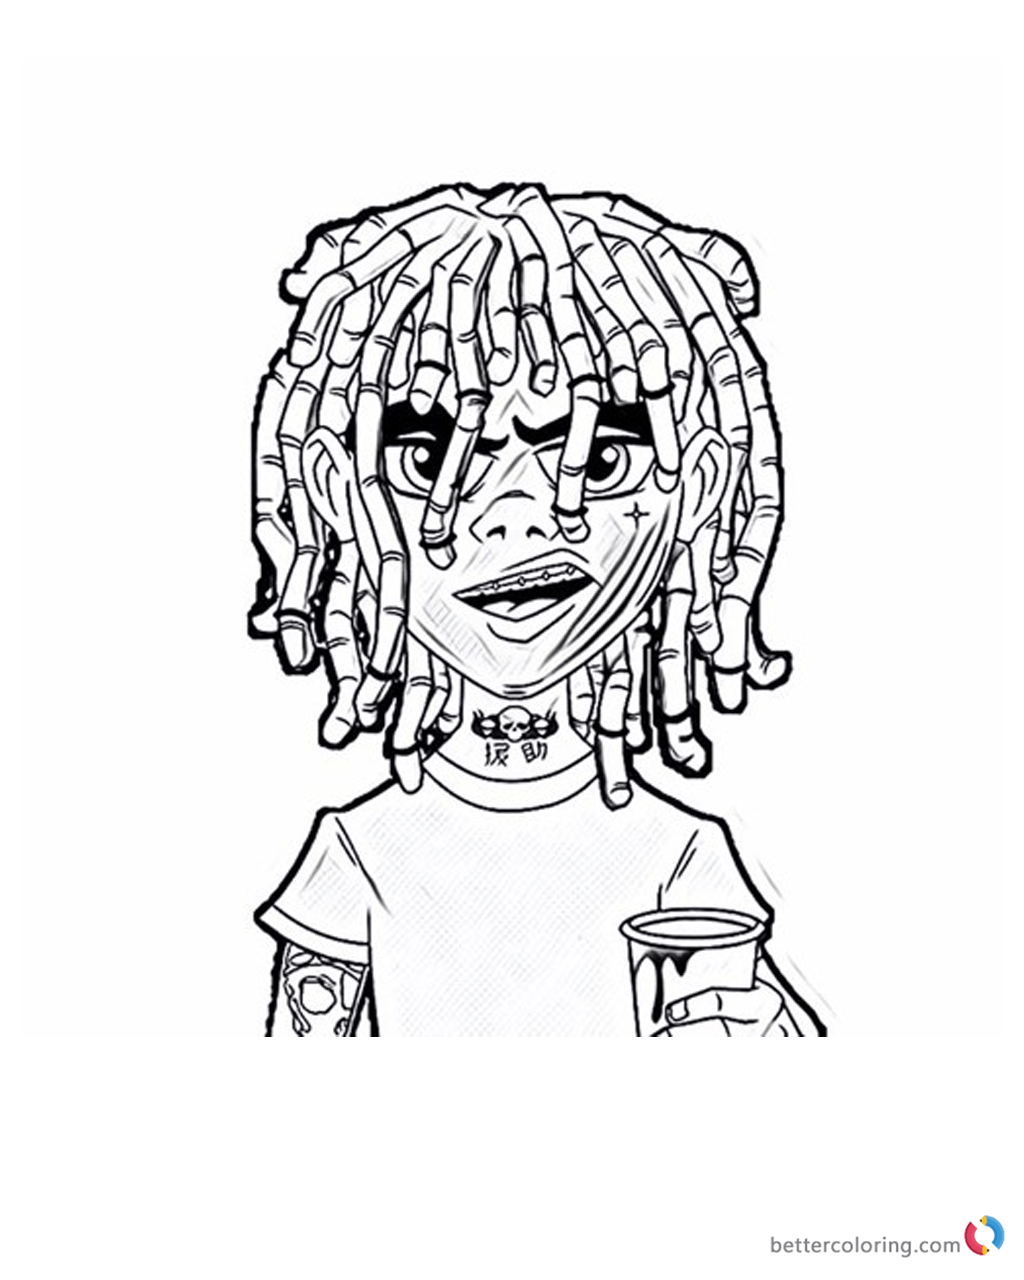 Lil Pump Coloring Pages